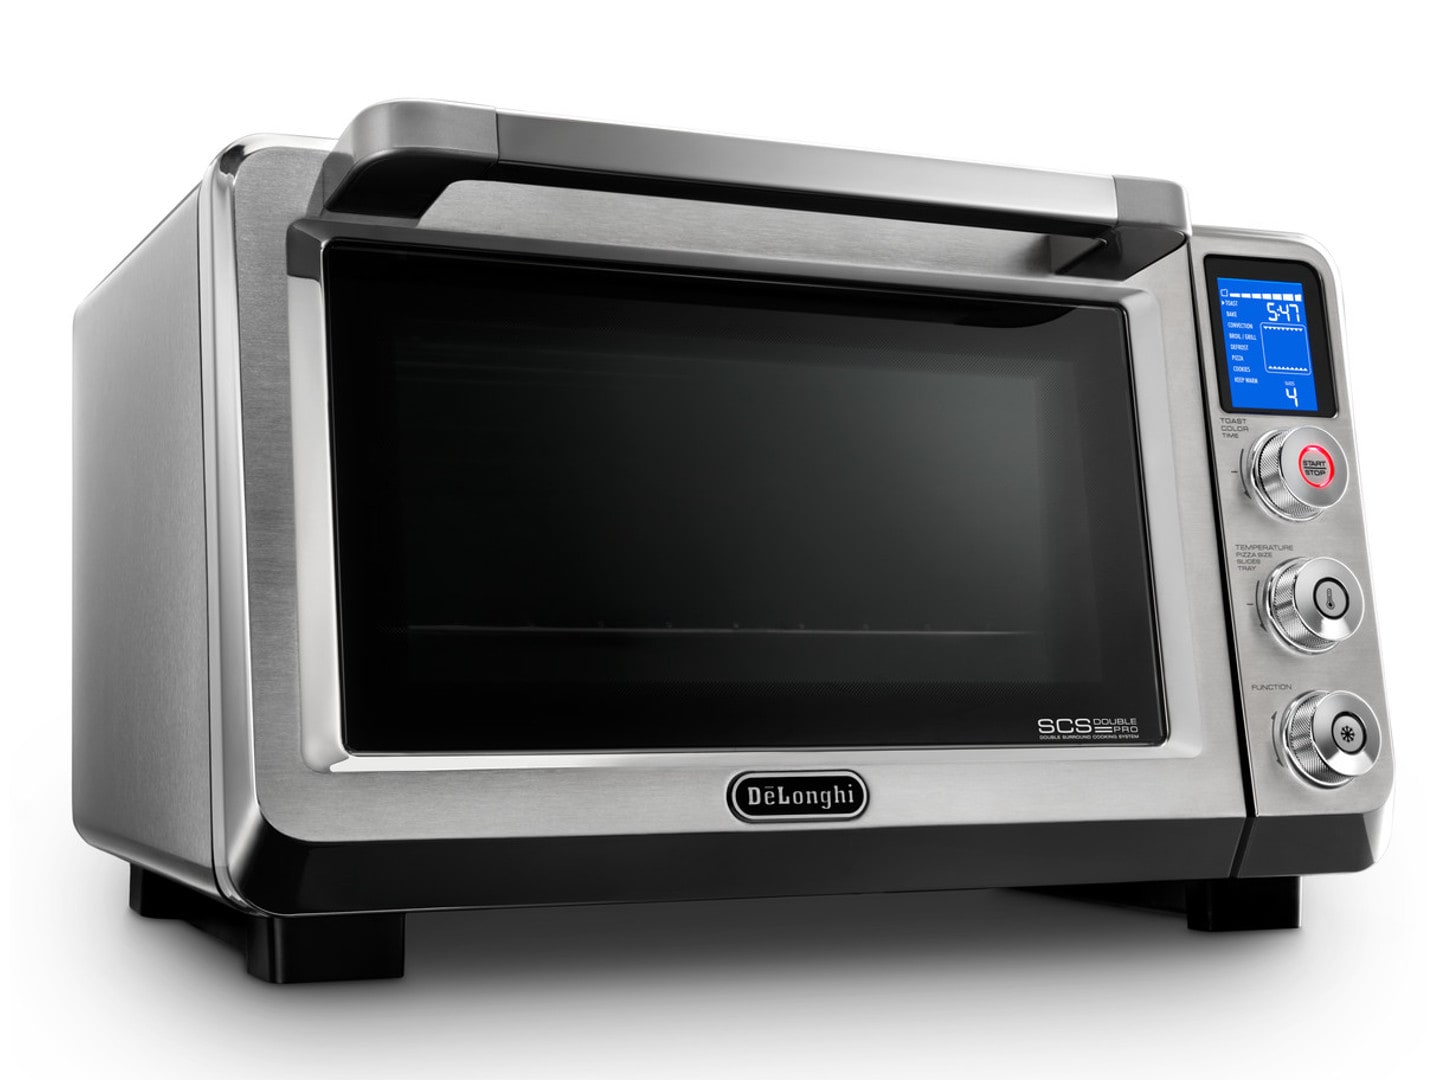 delonghi alfredo convection oven manual